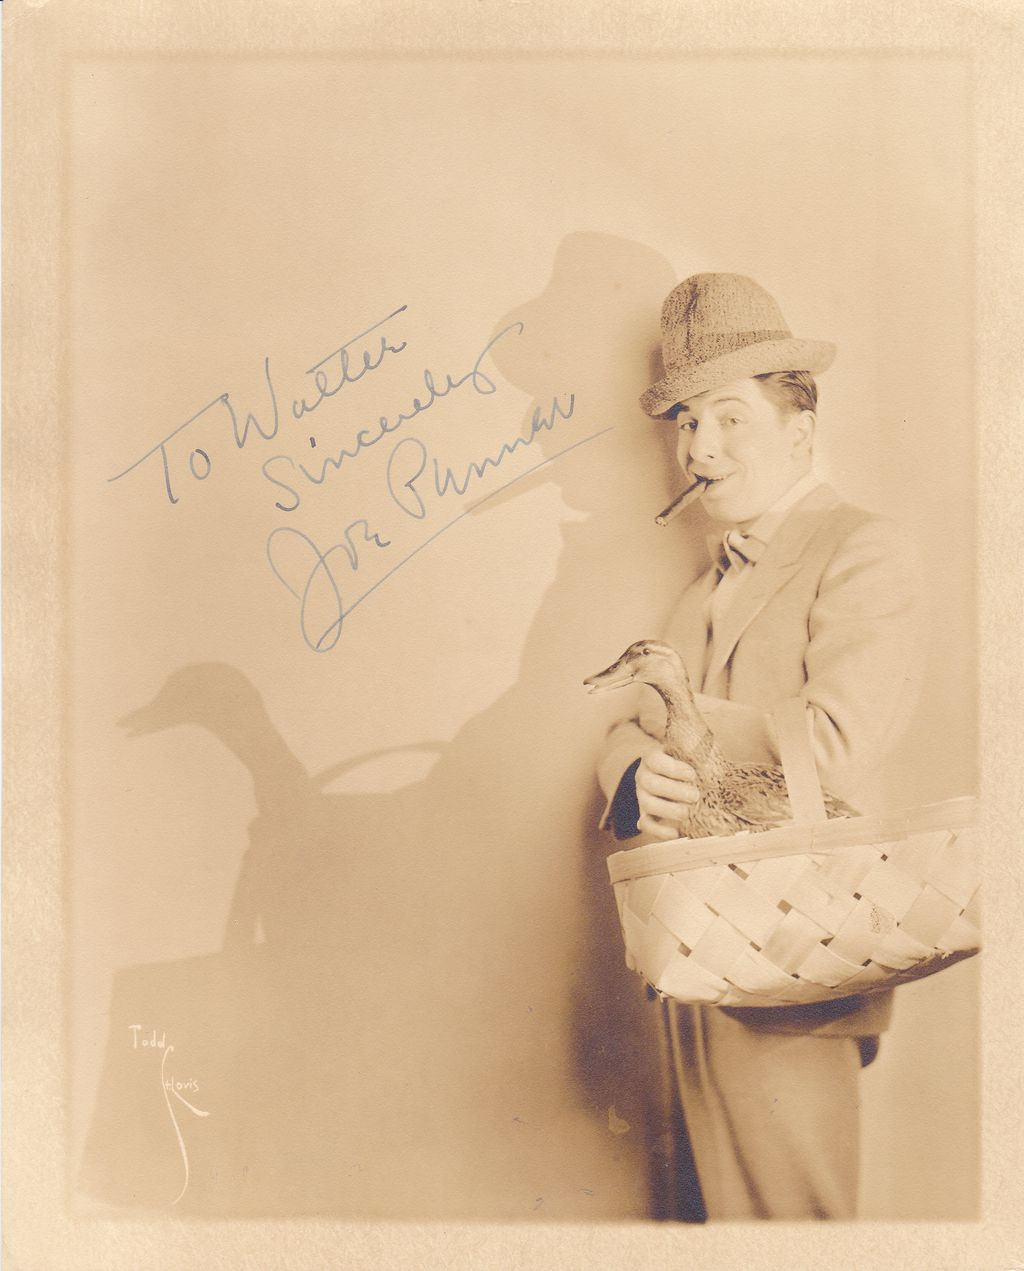 Joe Penner Authentic Vintage 1934 Signed Autograph Photo